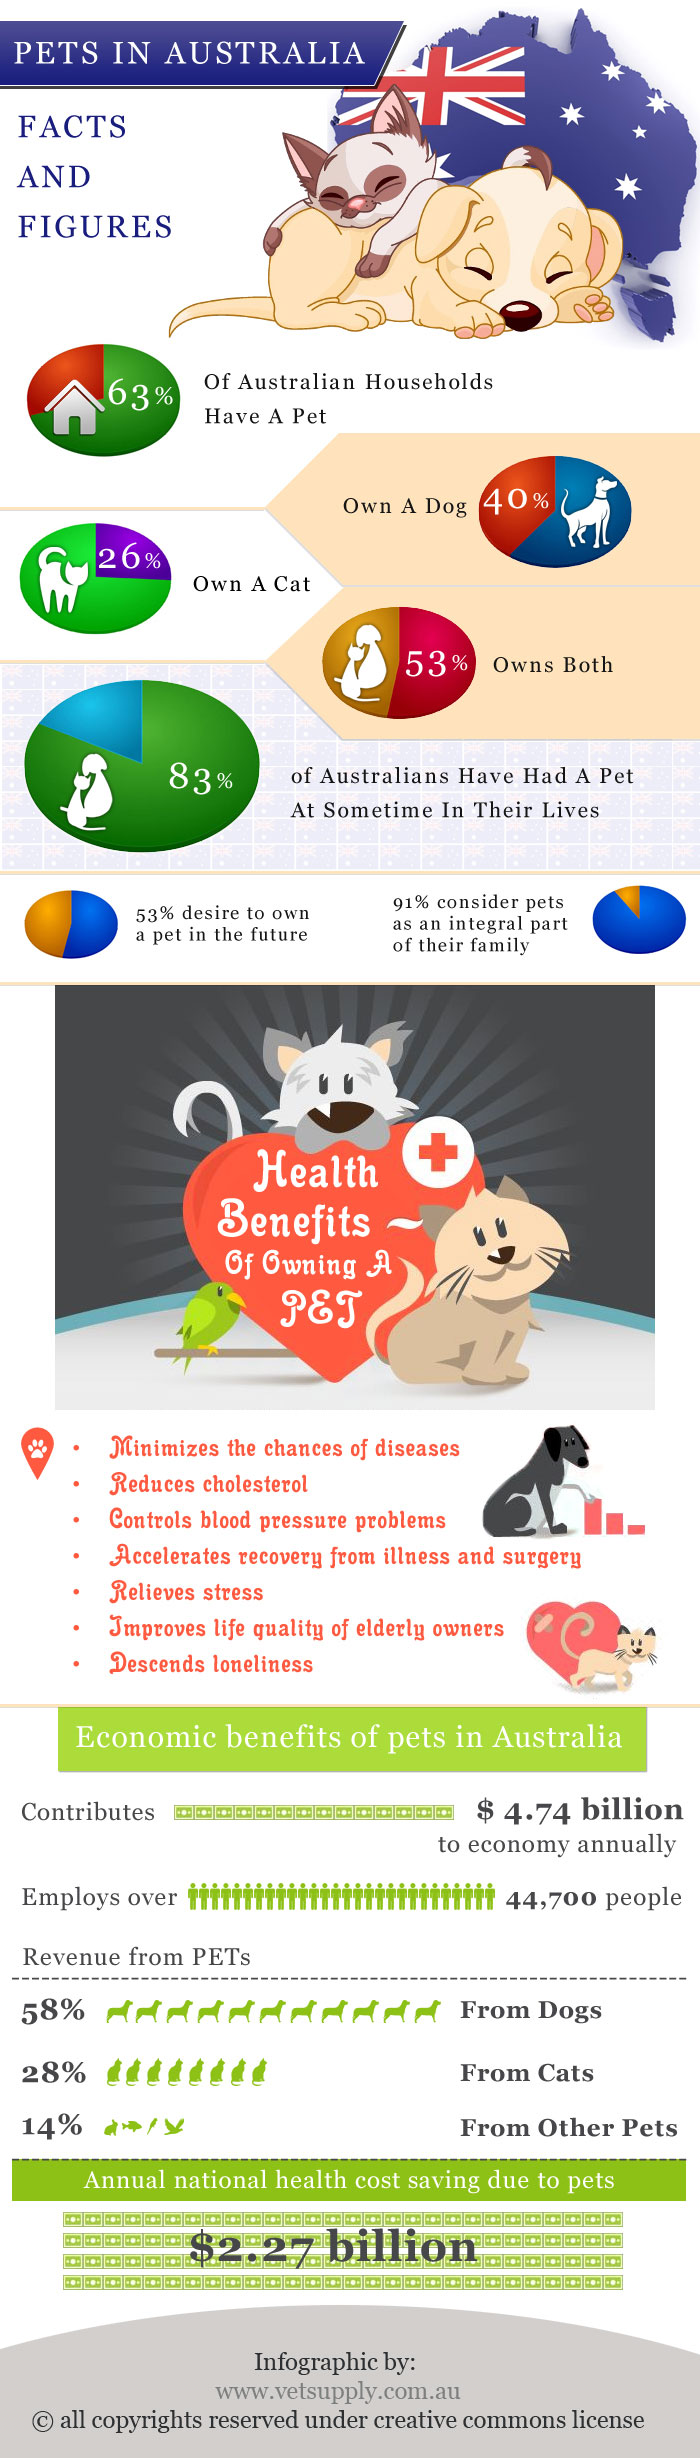 Pets In Australia Facts And Figures